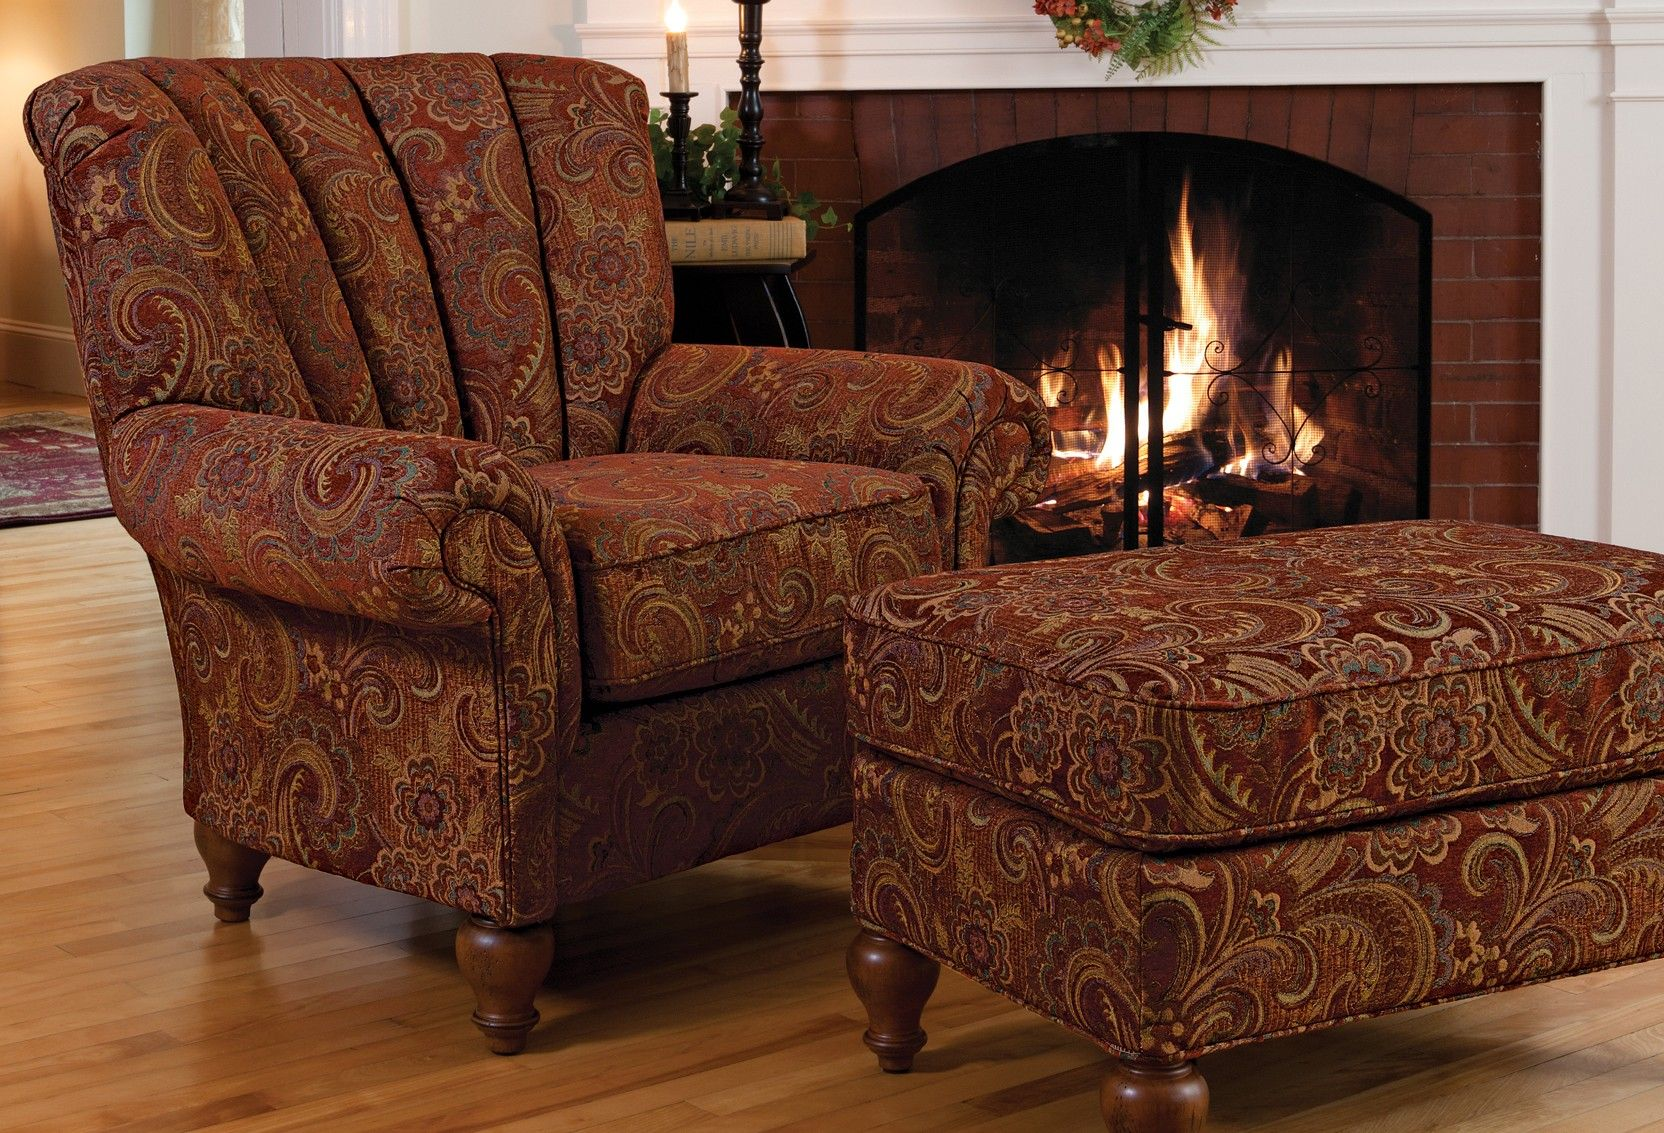 Jackson Furniture 707 10 2475 34 Oxford Accent Ottoman | Decor Ideas |  Pinterest | Ottomans, Ranges And Traditional